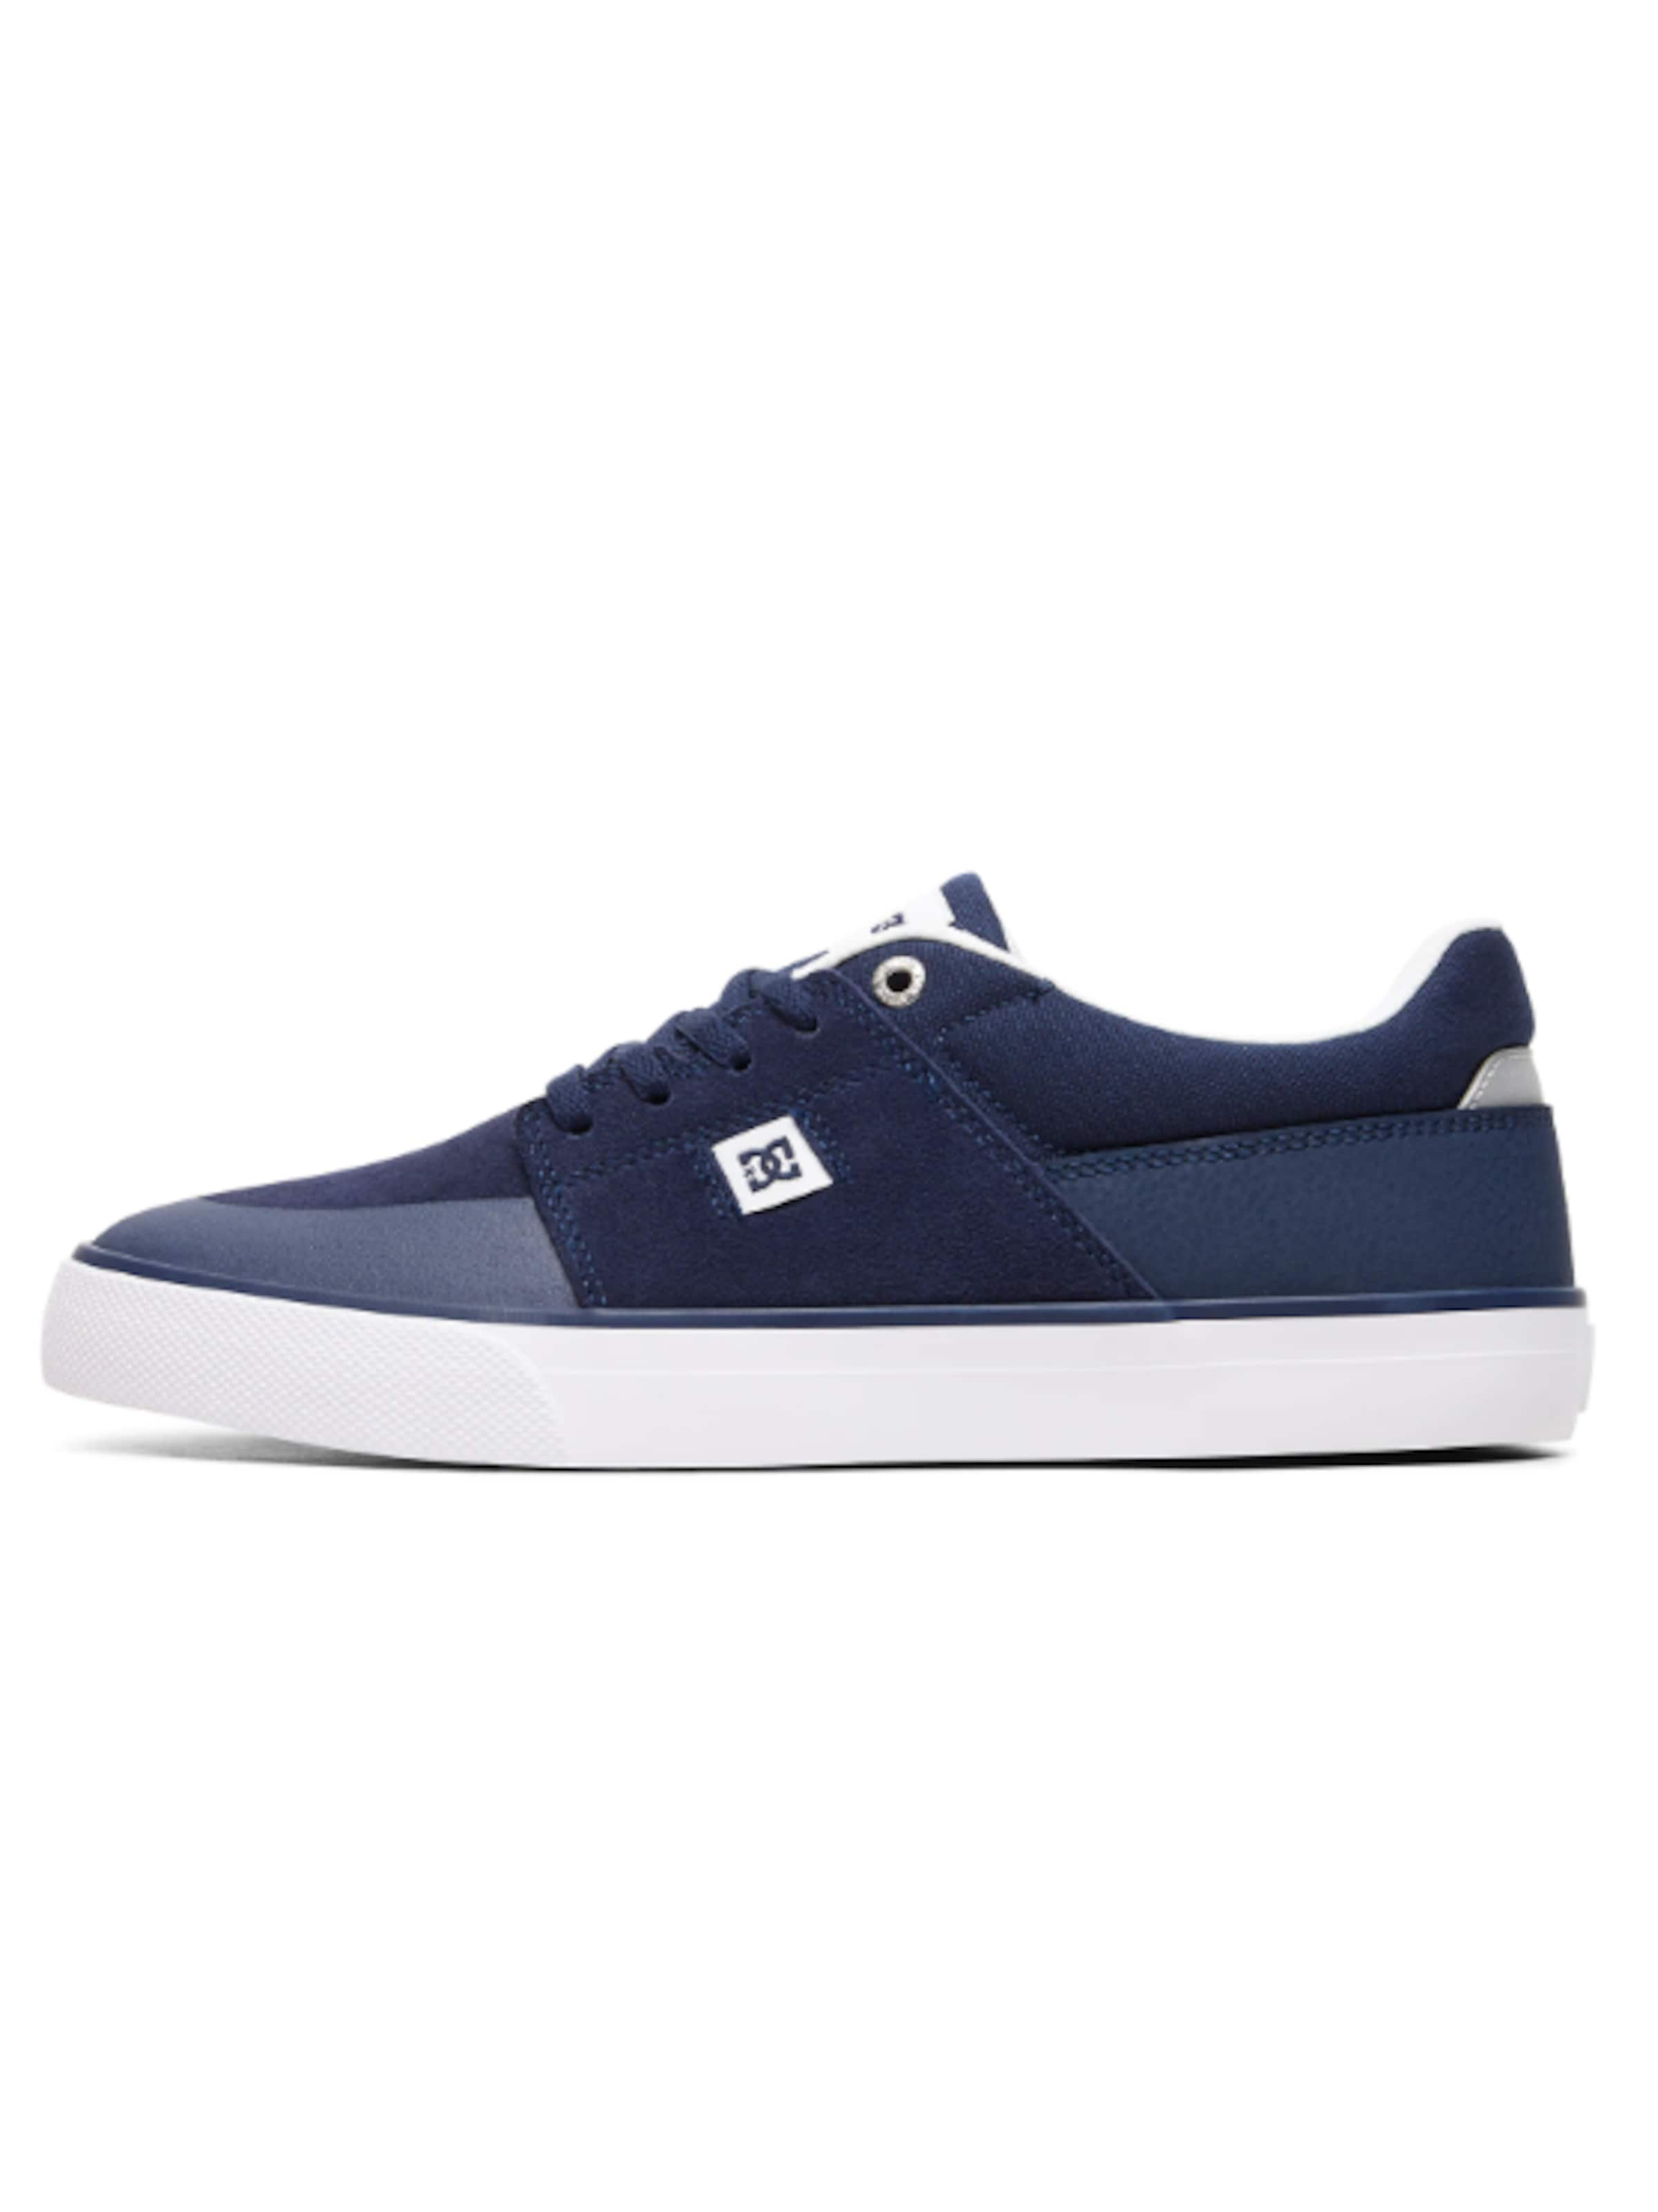 DC Shoes Sneaker  Wes Kremer